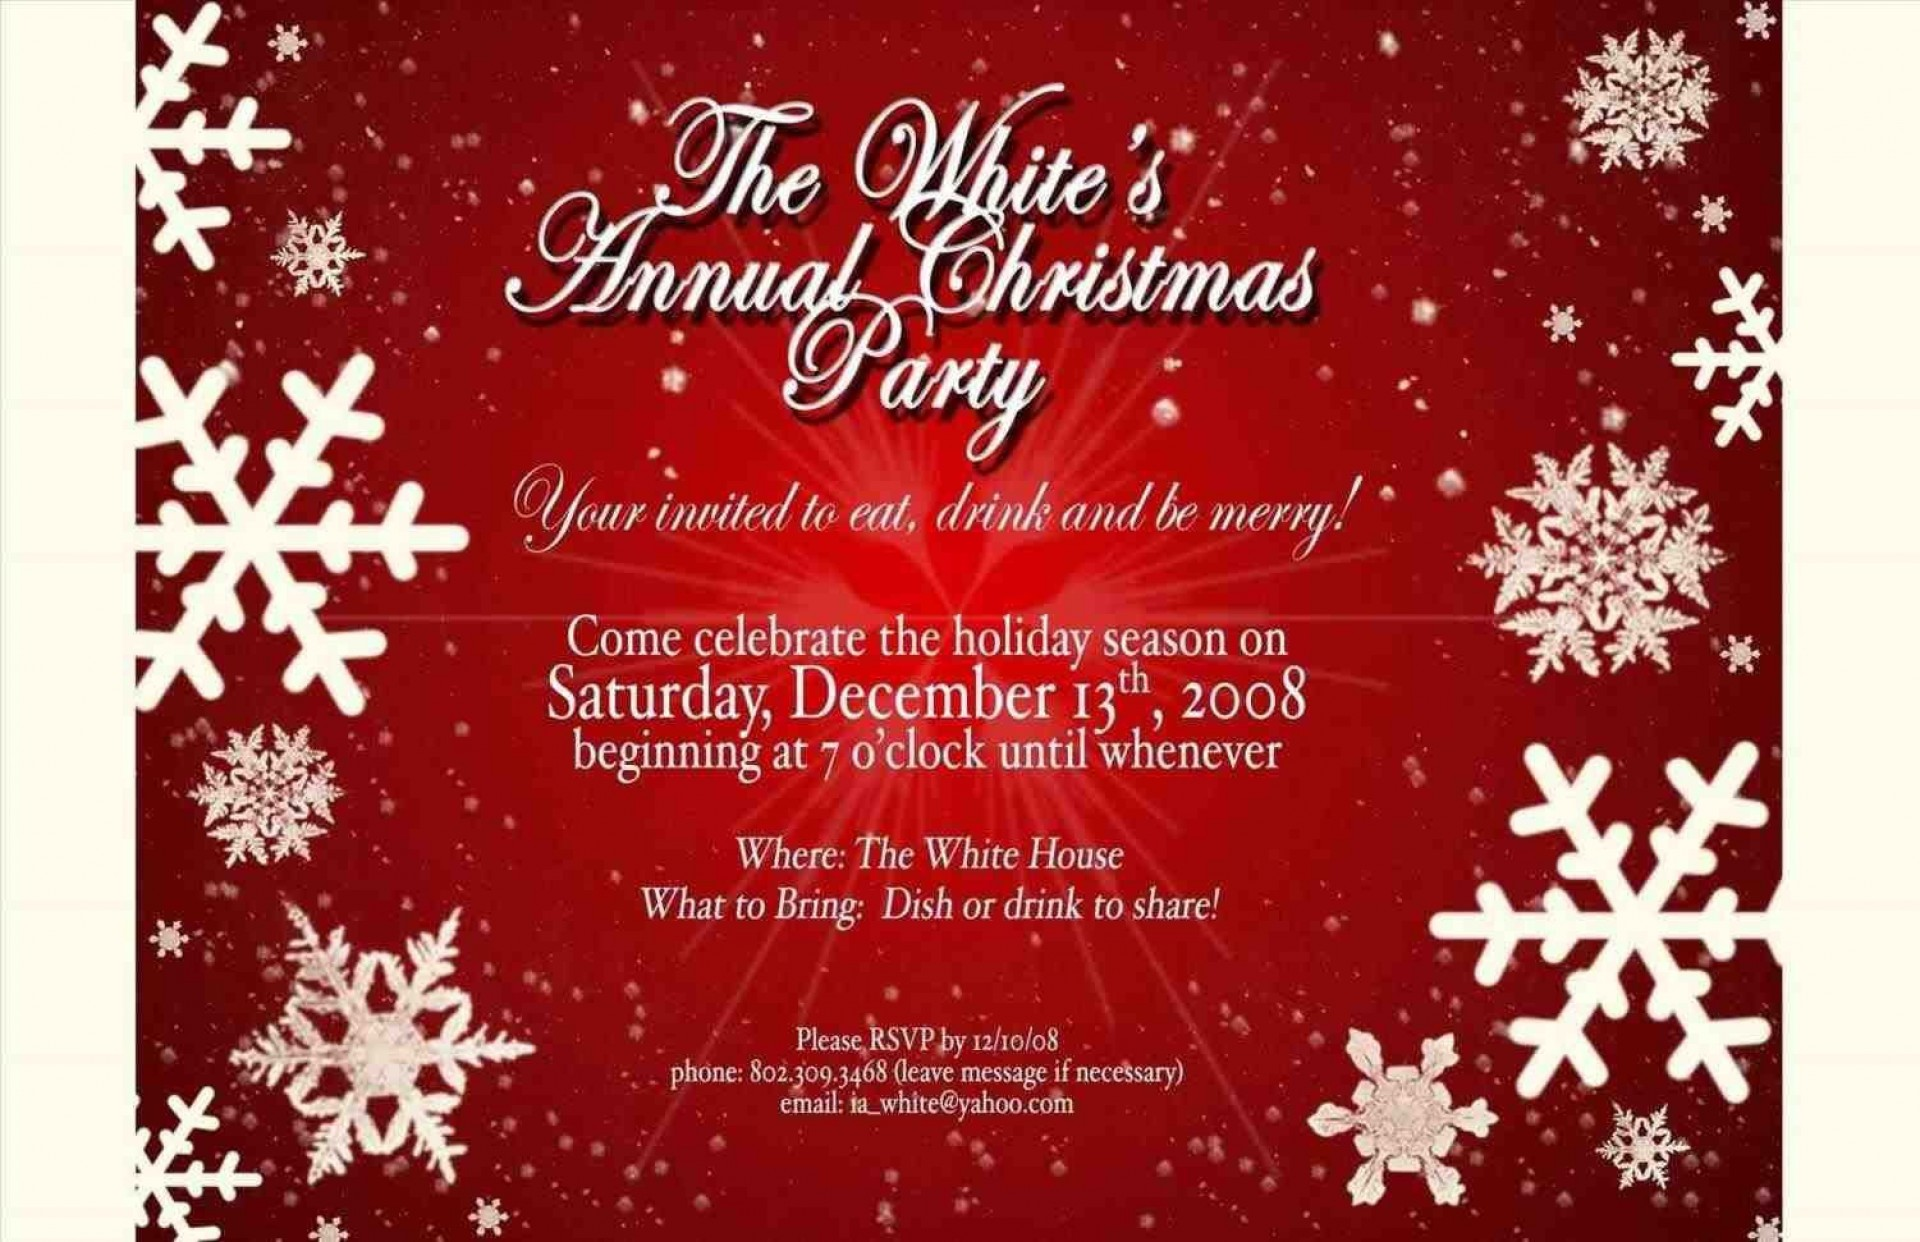 007 Wonderful Free Email Holiday Party Invitation Template High Resolution  Templates Christma1920